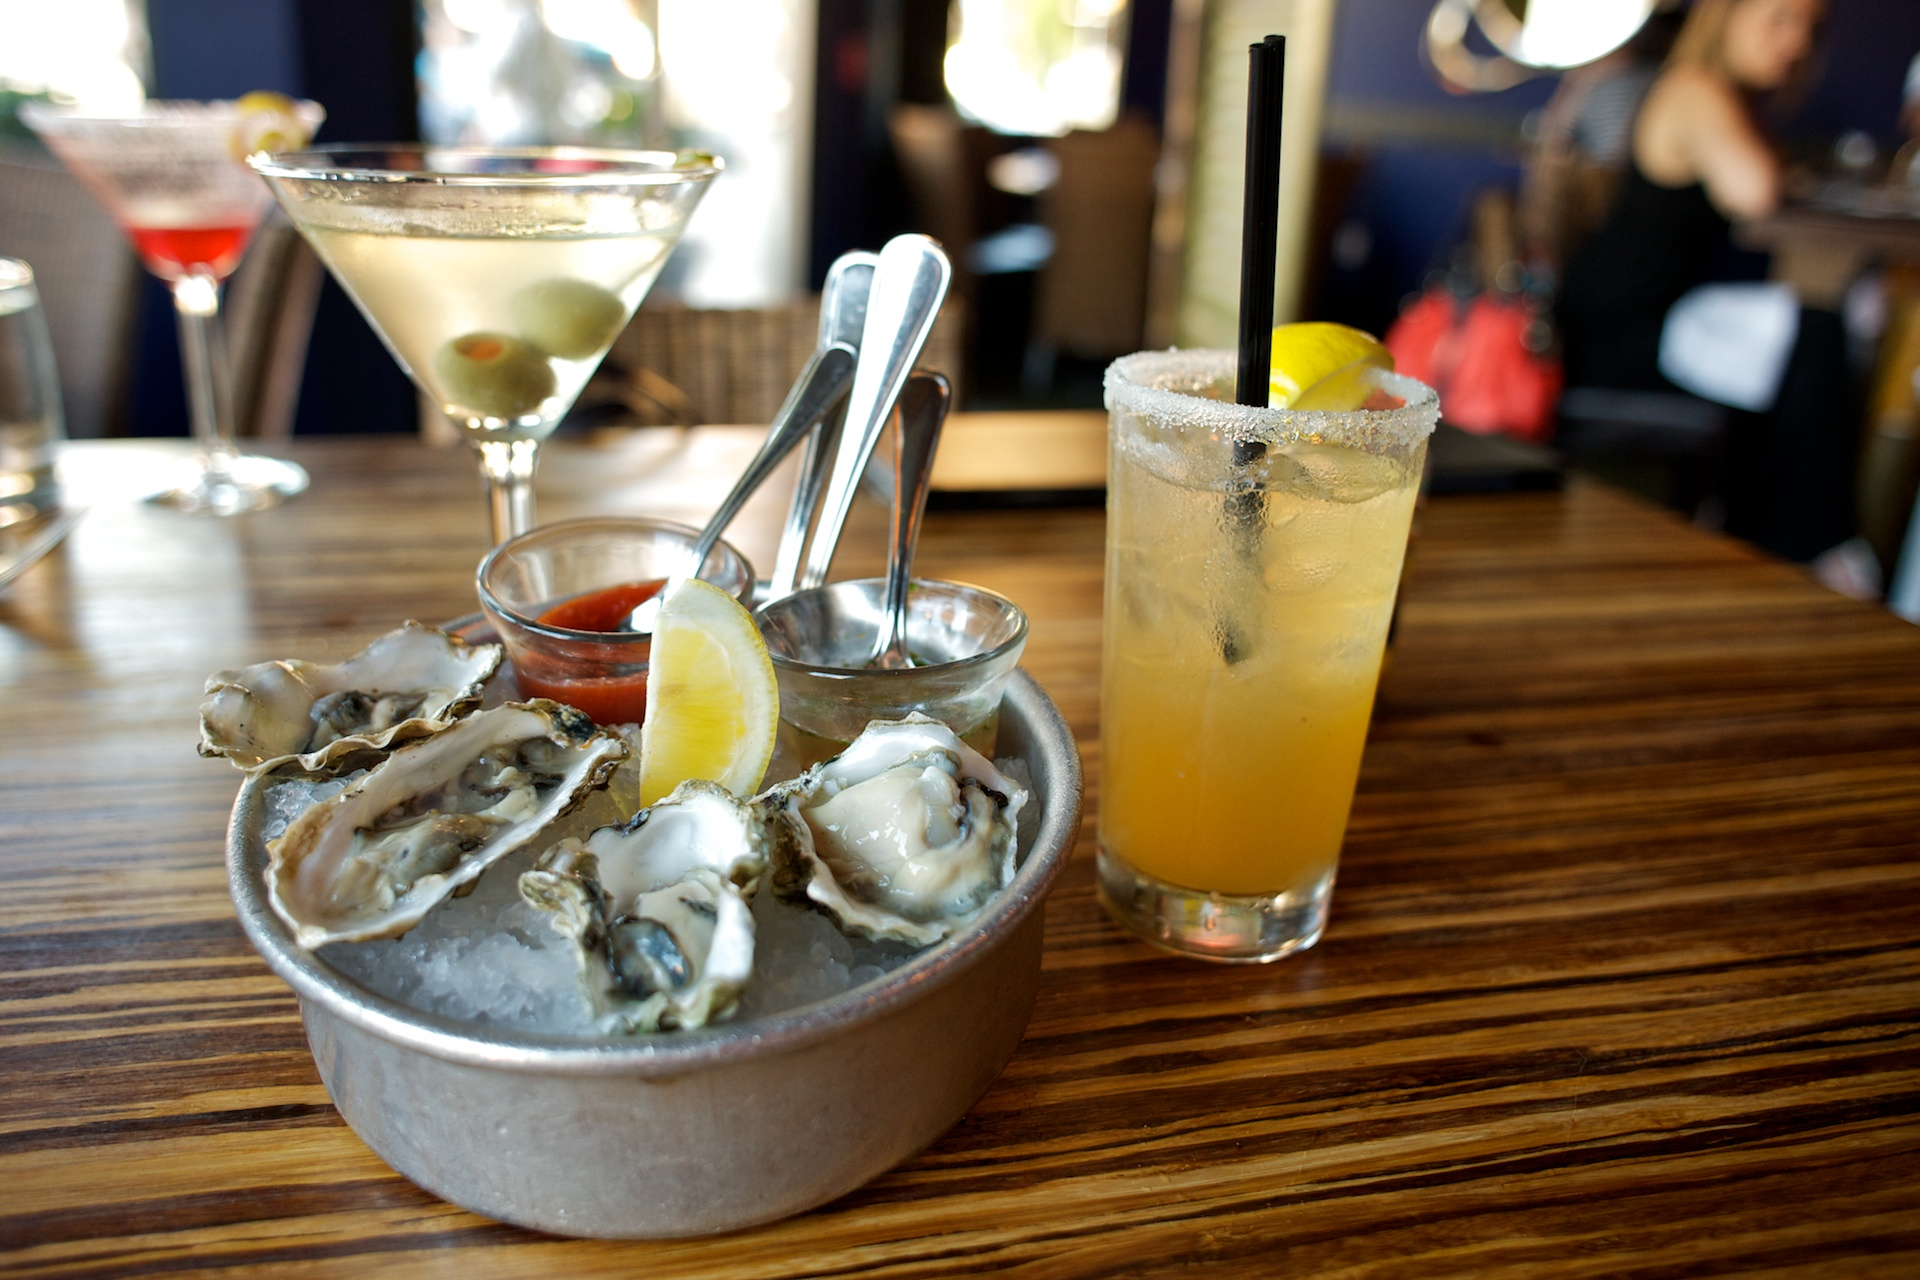 Washington-and-California-Oysters-with-Dirty-Martini-and-Sidecar-cocktails.jpg